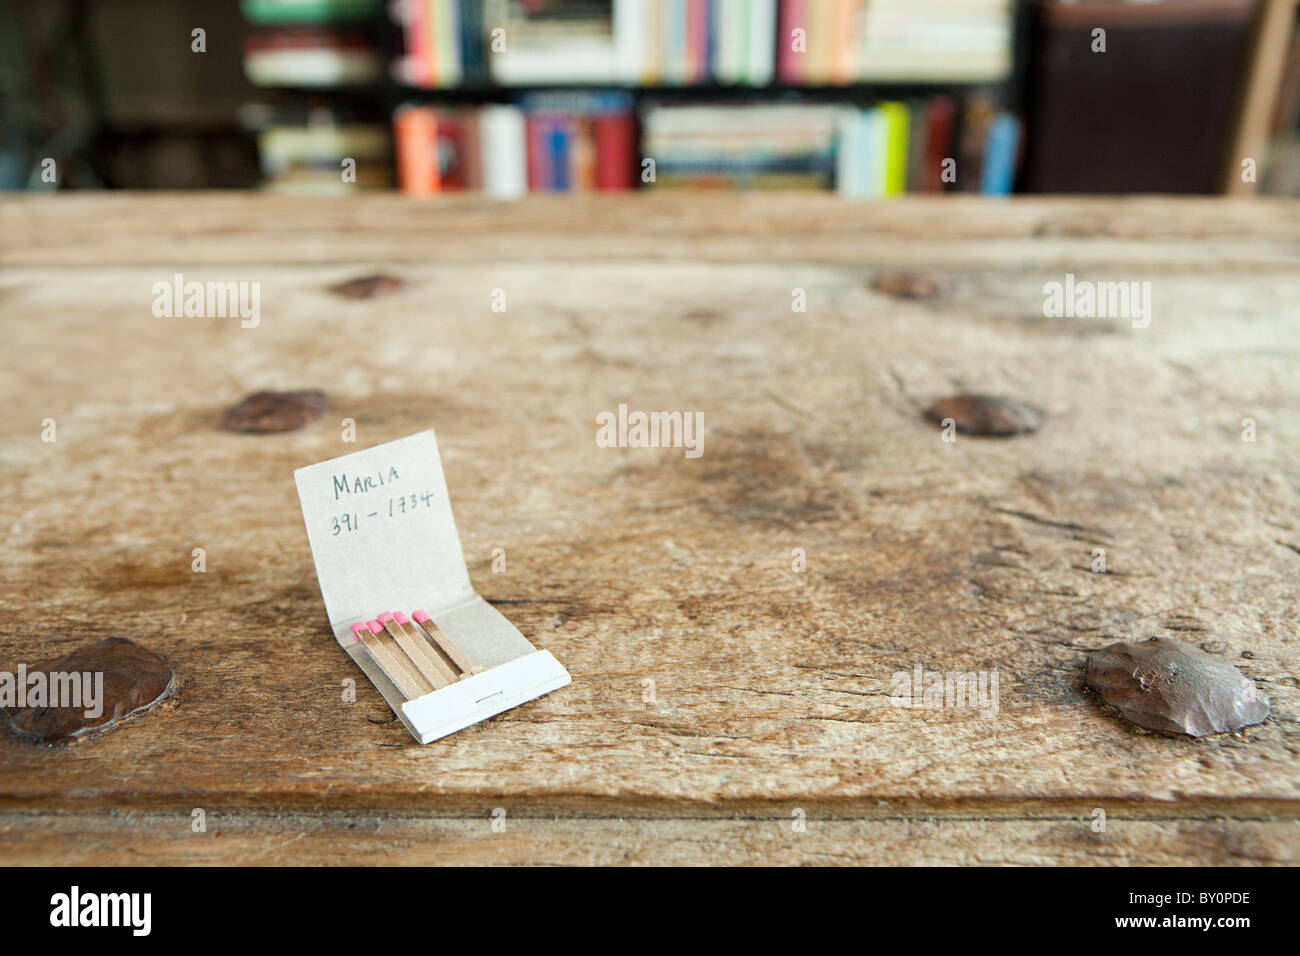 Phone number on a matchbook - Stock Image